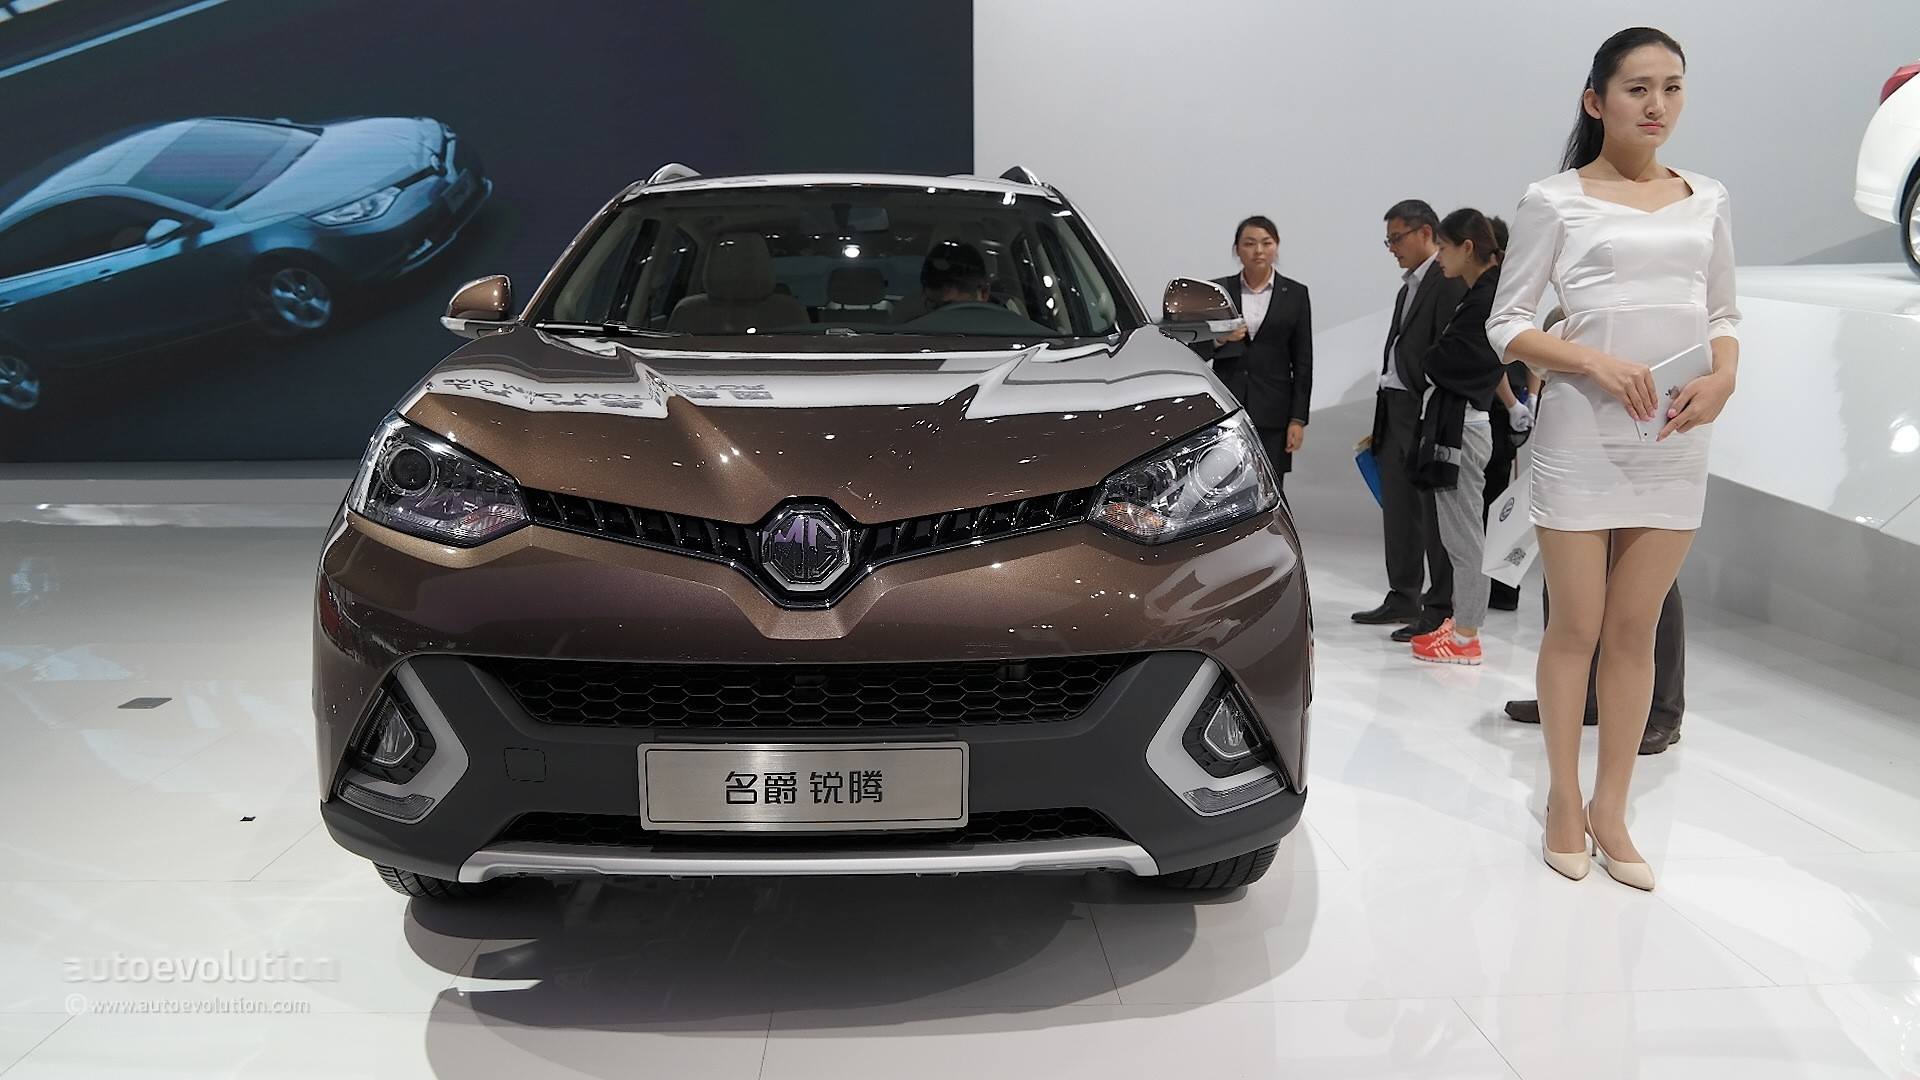 Mg Gs Suv Debuts In Shanghai With 1 5 And 2 Liter Turbo